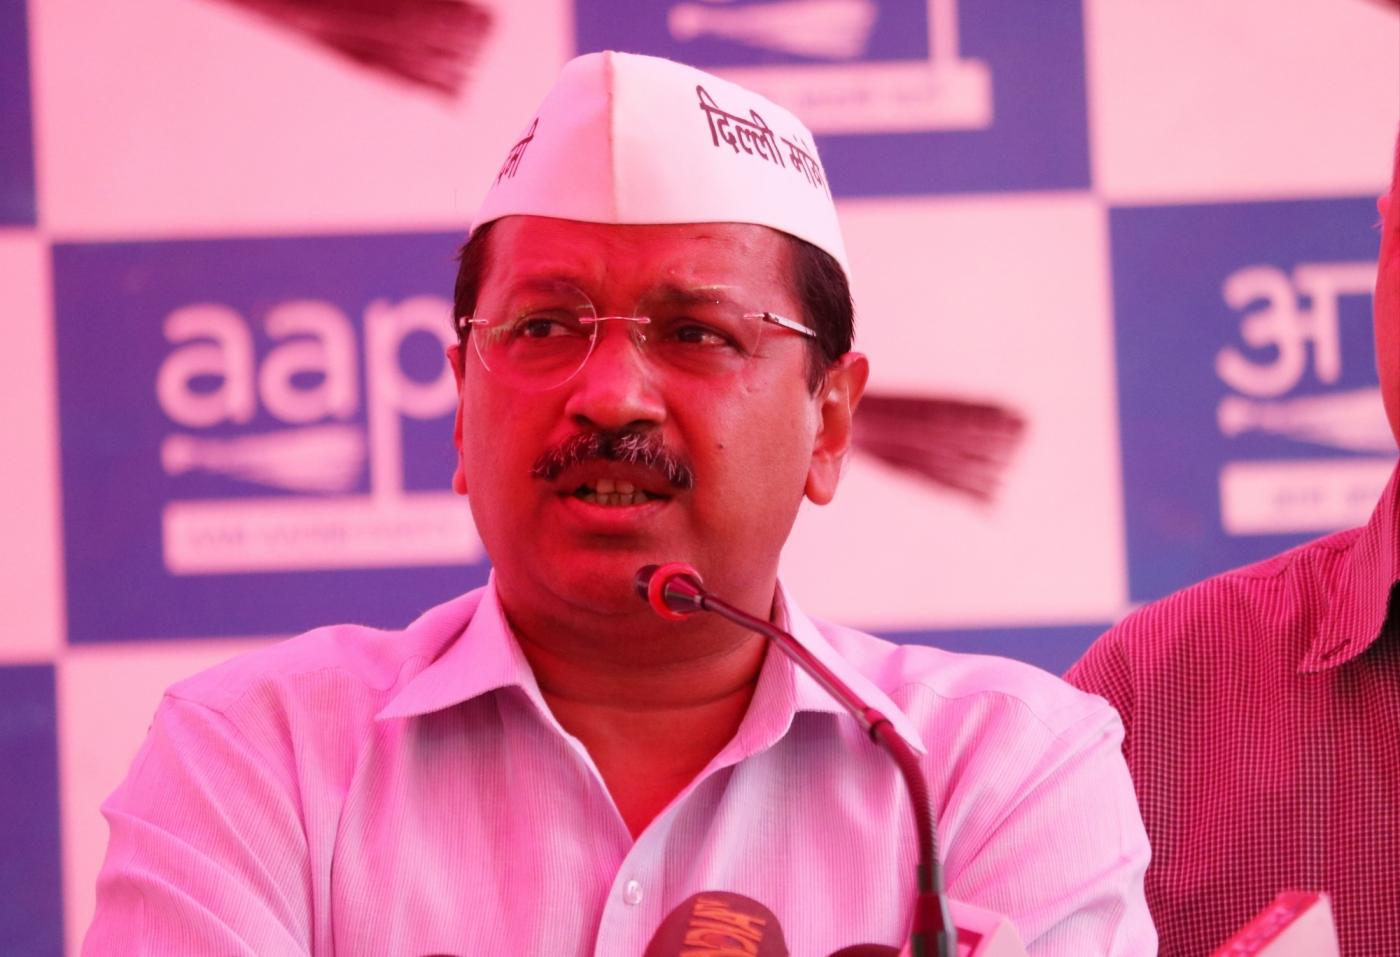 New Delhi: Delhi Chief Minister Arvind Kejriwal addresses a press conference regarding the attack on him during a road show on 4th May, in West Delhi; in New Delhi, on May 5, 2019. (Photo: IANS) by .